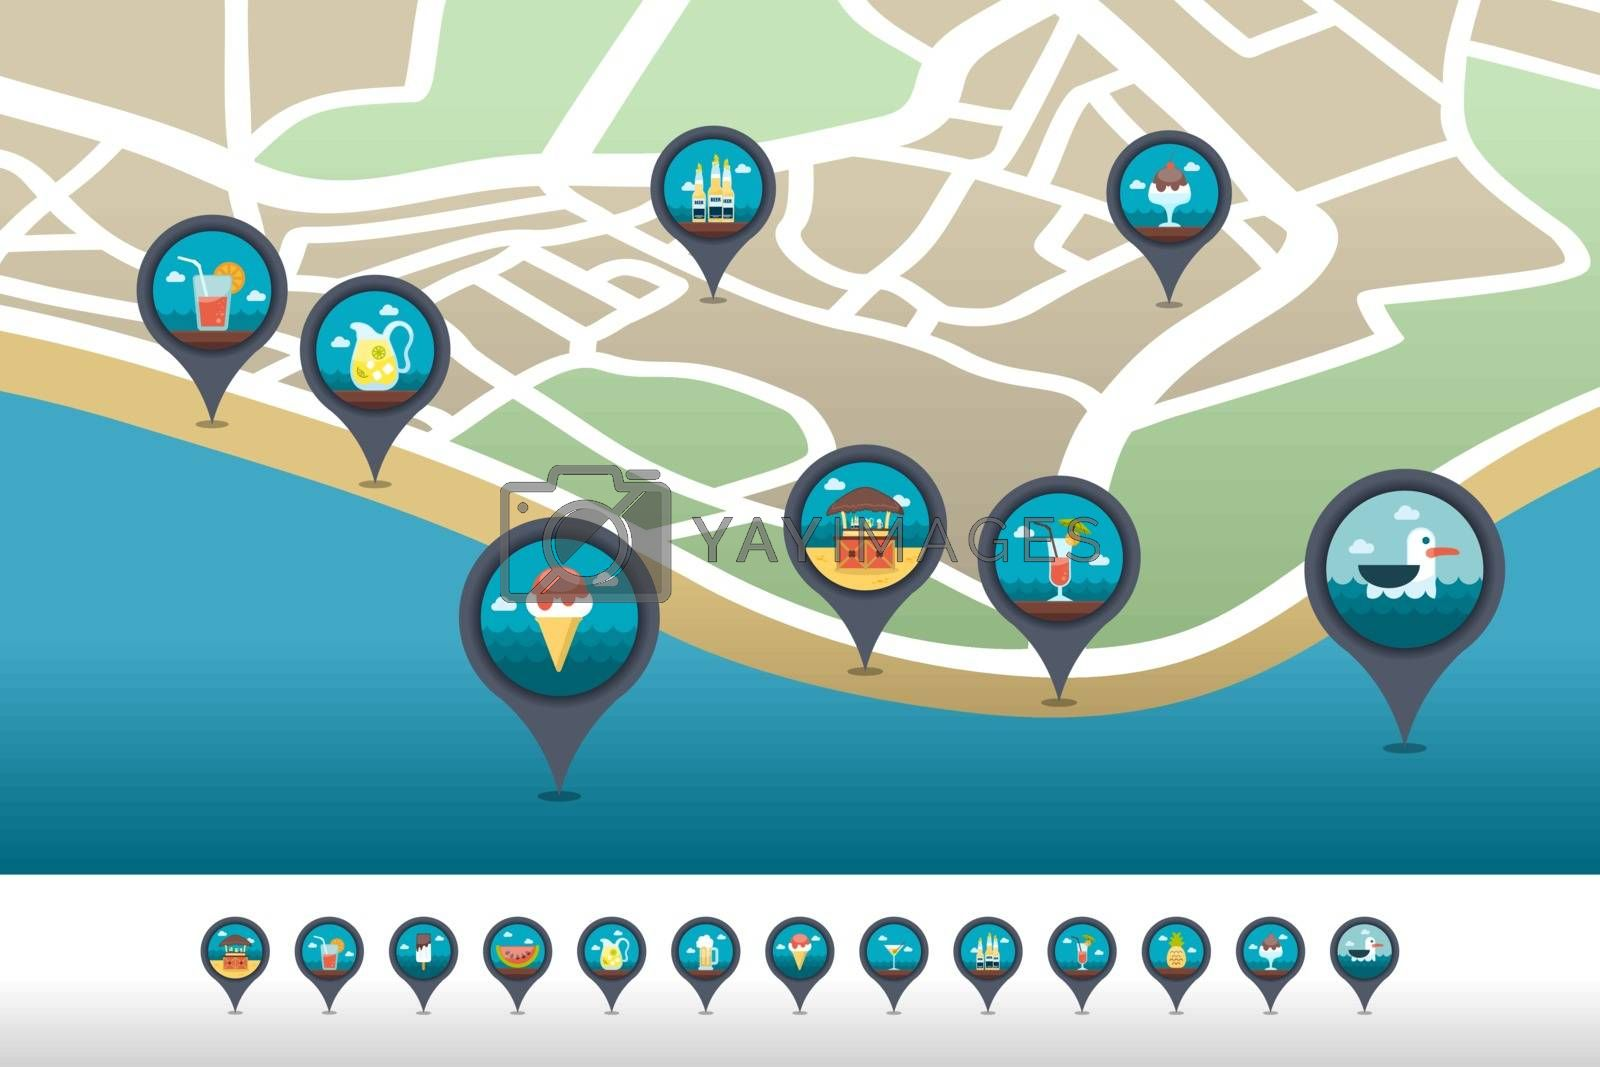 Bar beach pin map icon located on the map by nosik